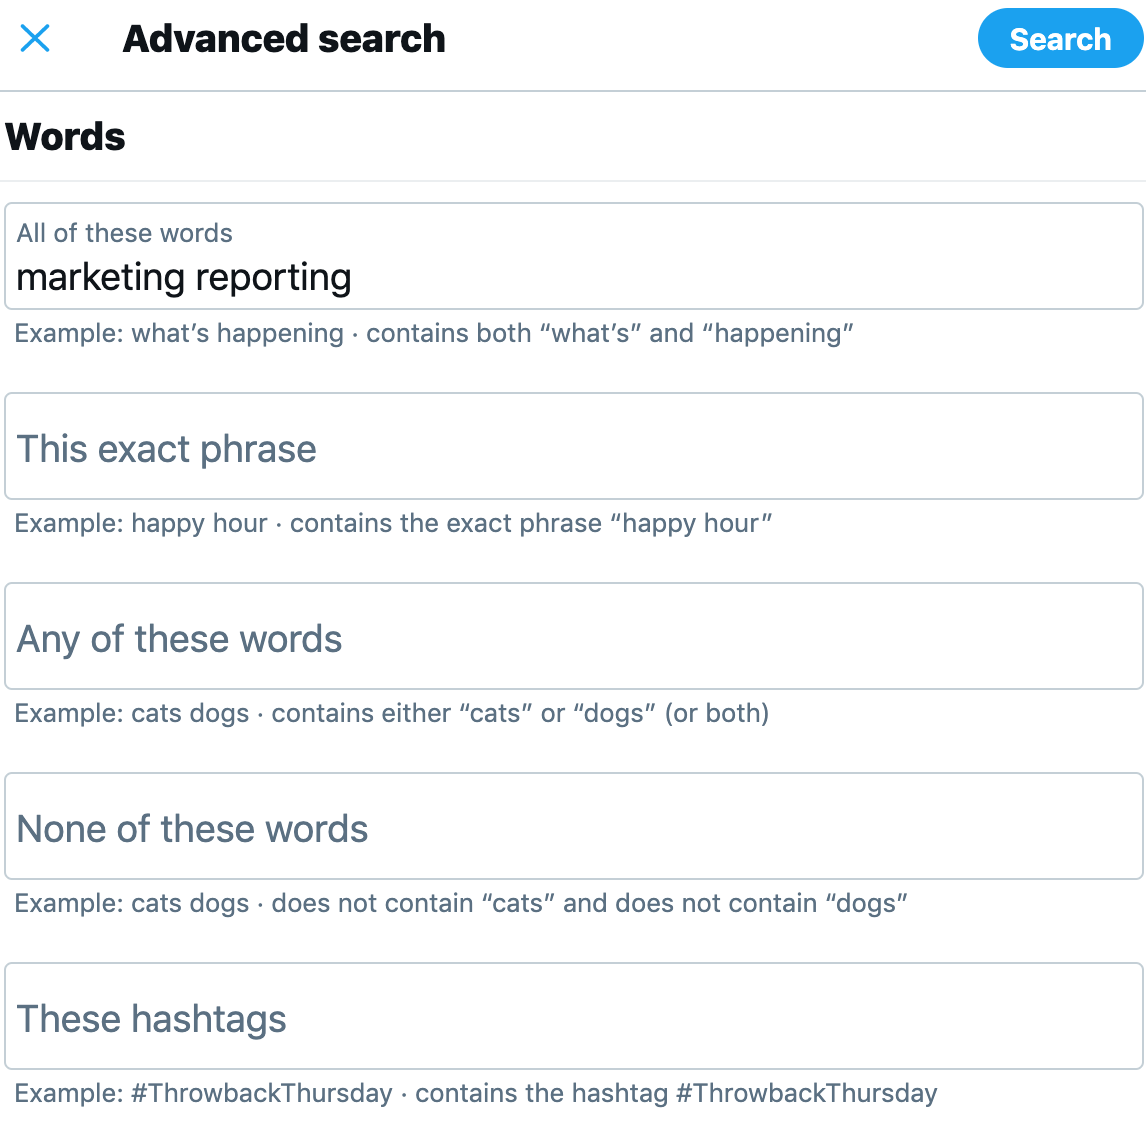 twitter advanced search form